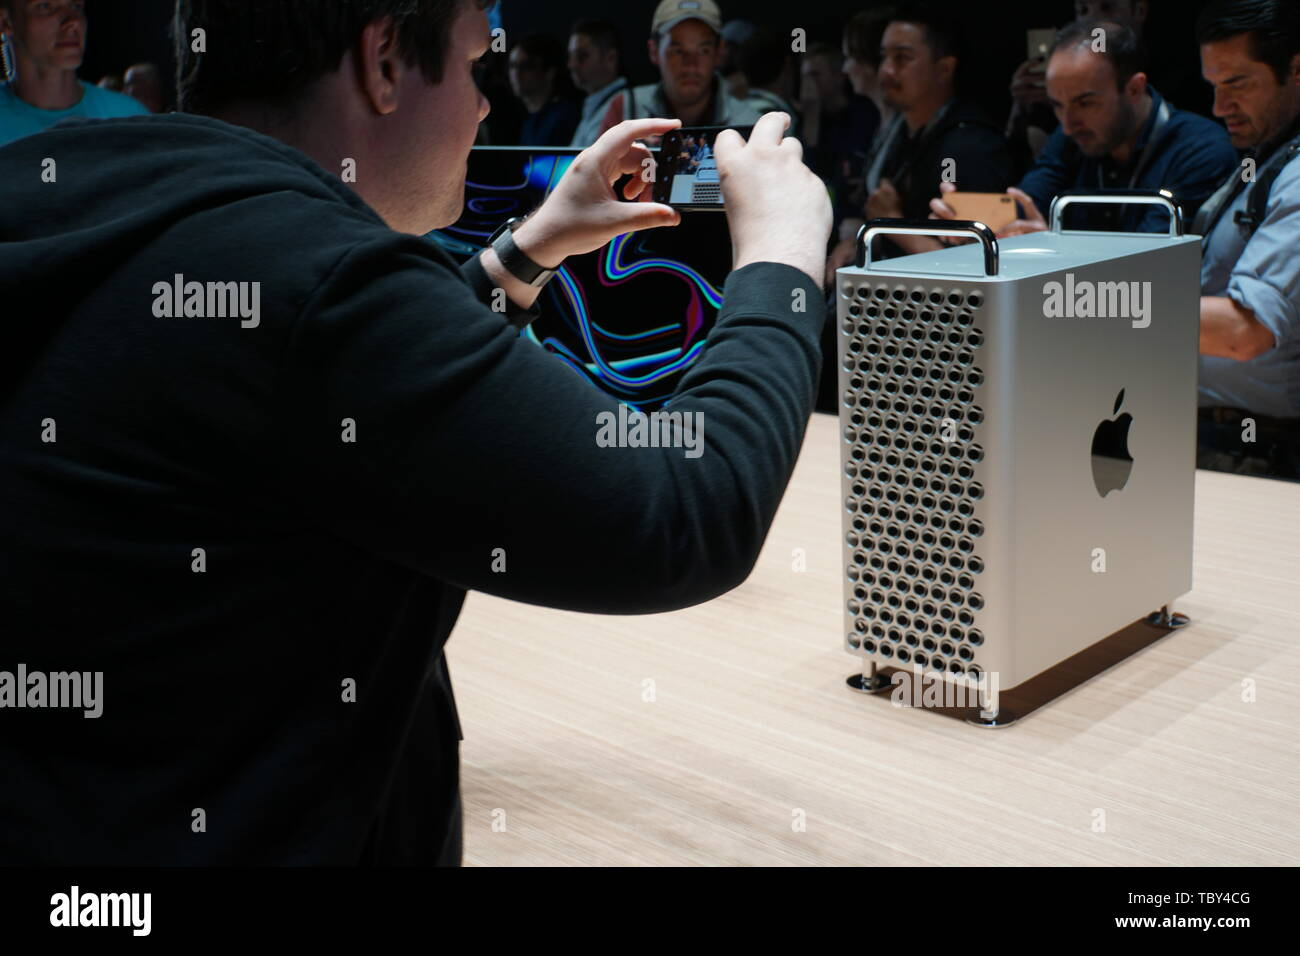 San Jose, USA. 03rd June, 2019. The new Apple professional Mac Pro and the 6K Pro Display XDR display at the WWDC 2019 developer conference in San Jose. Credit: Christoph Dernbach/dpa/Alamy Live News - Stock Image